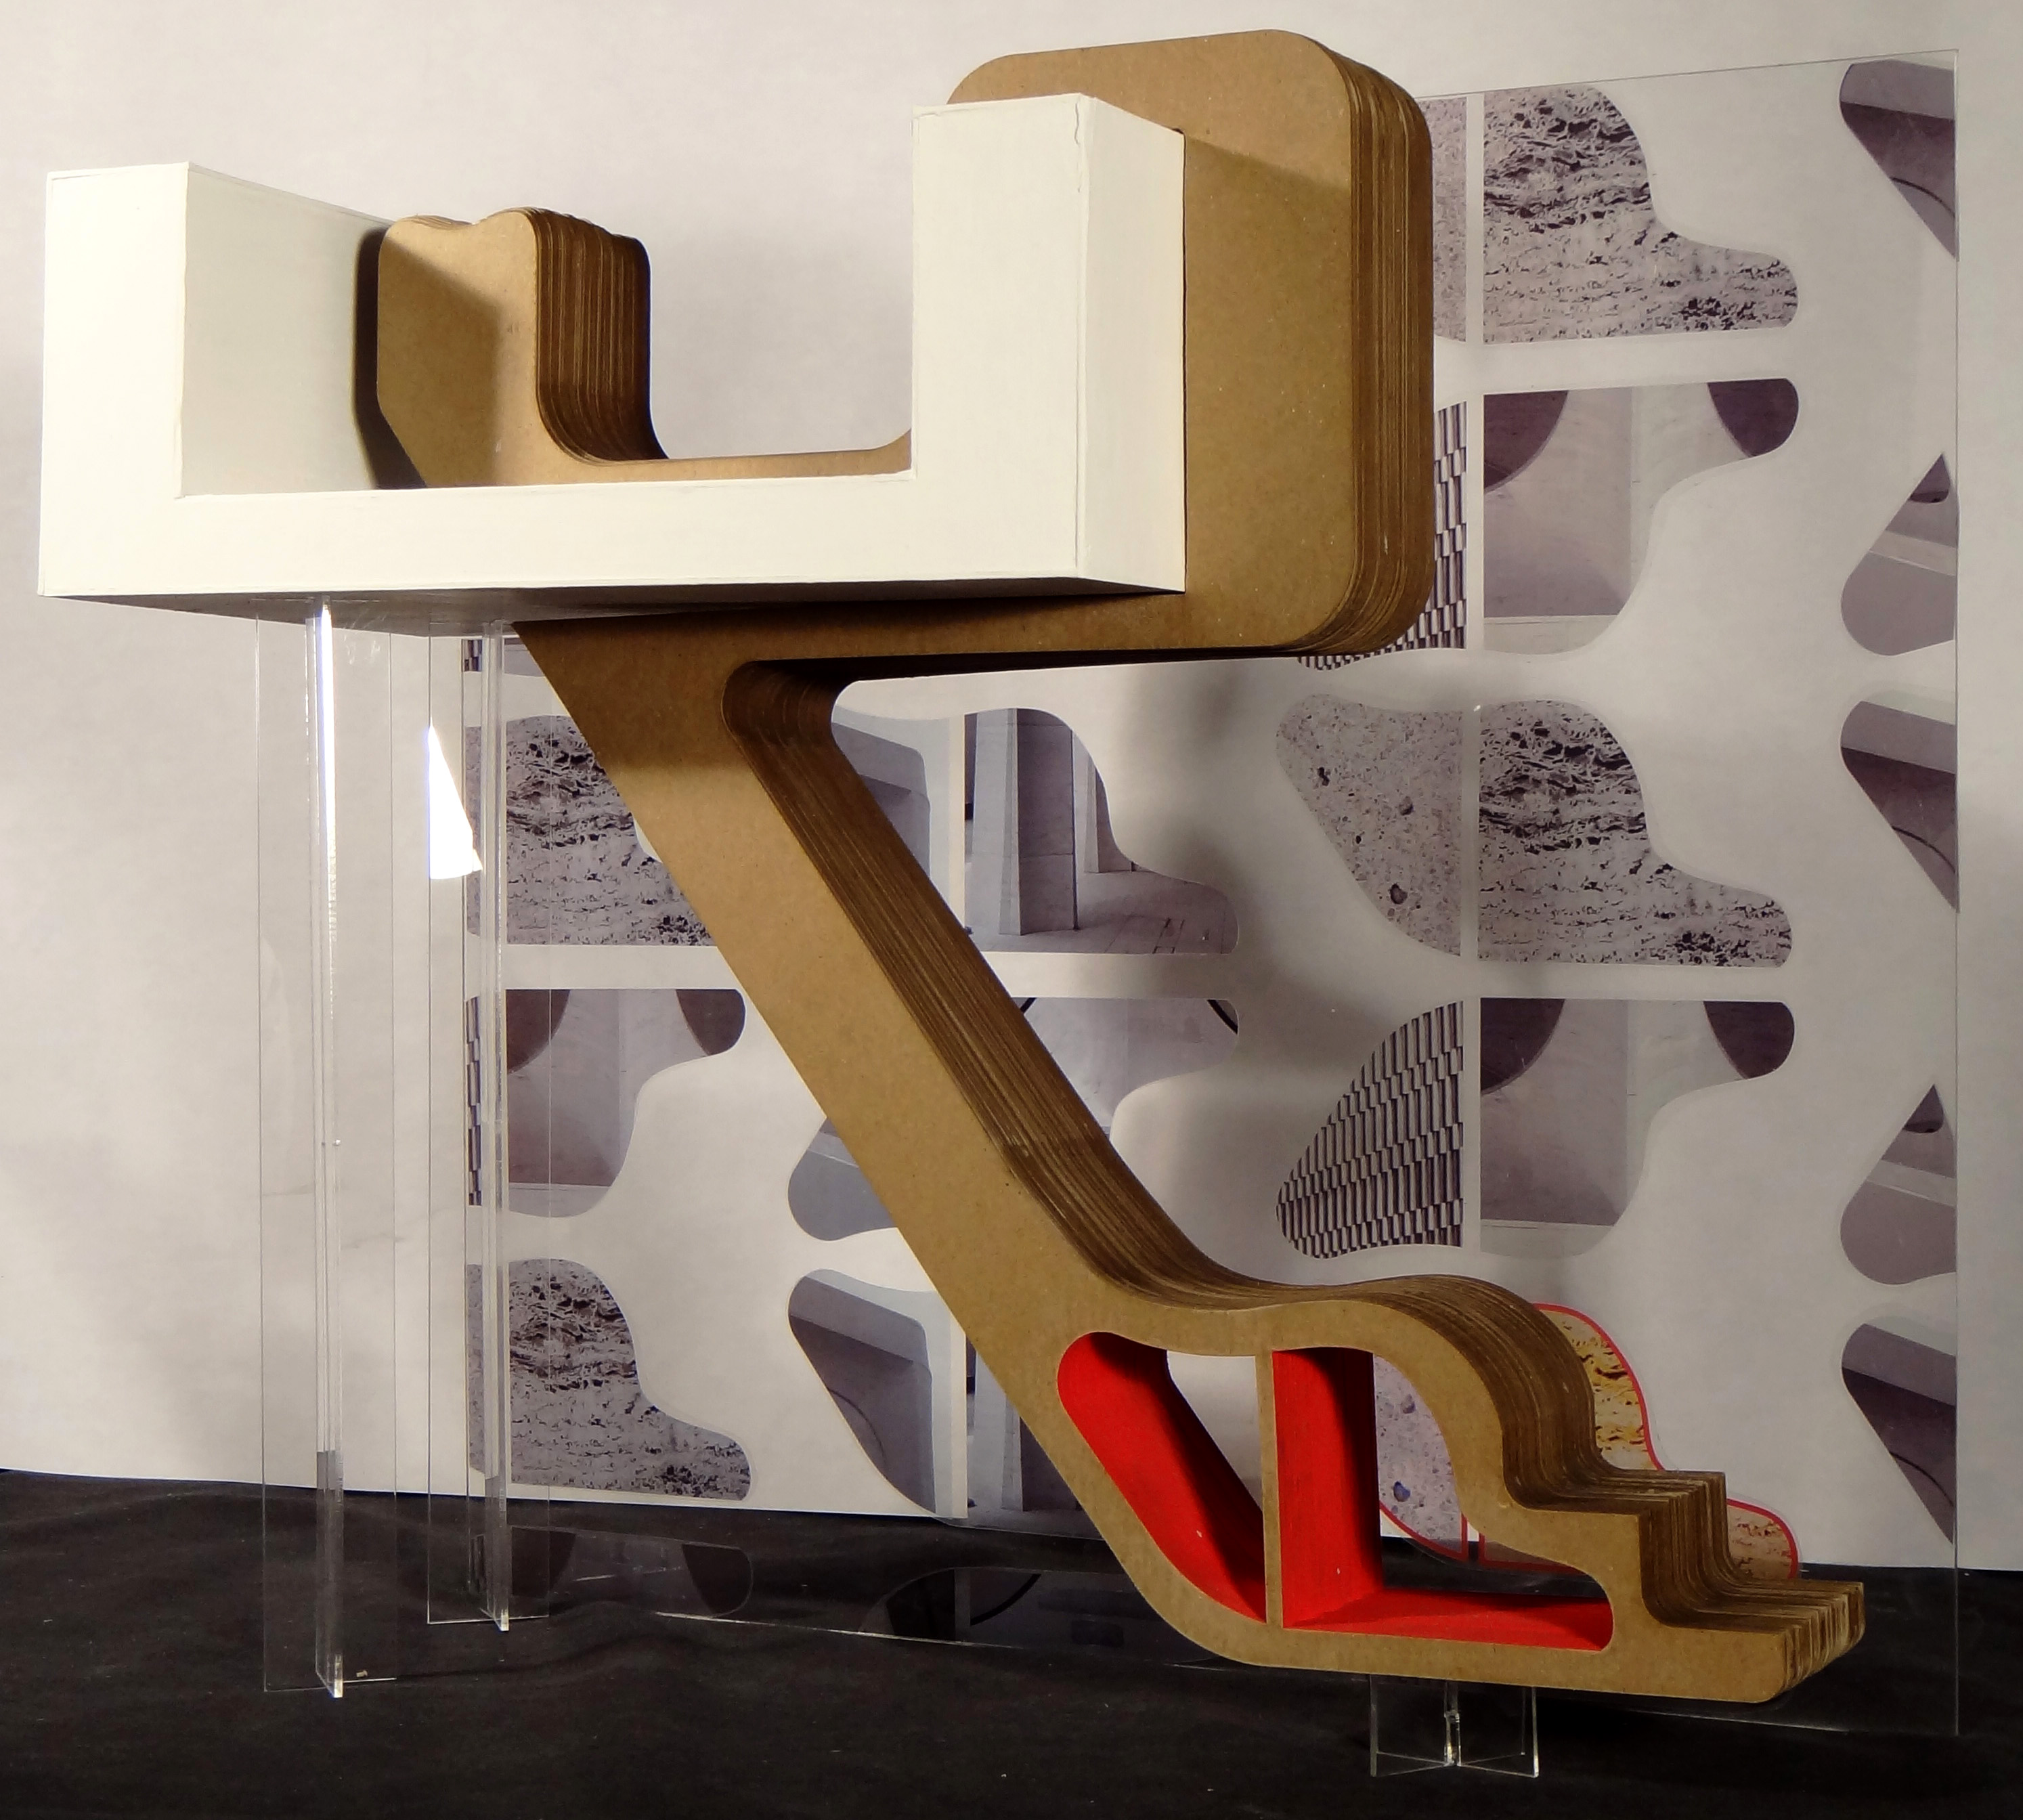 Kruger Collection To Present Modern Miniatures Exhibition News - Office furniture lincoln ne